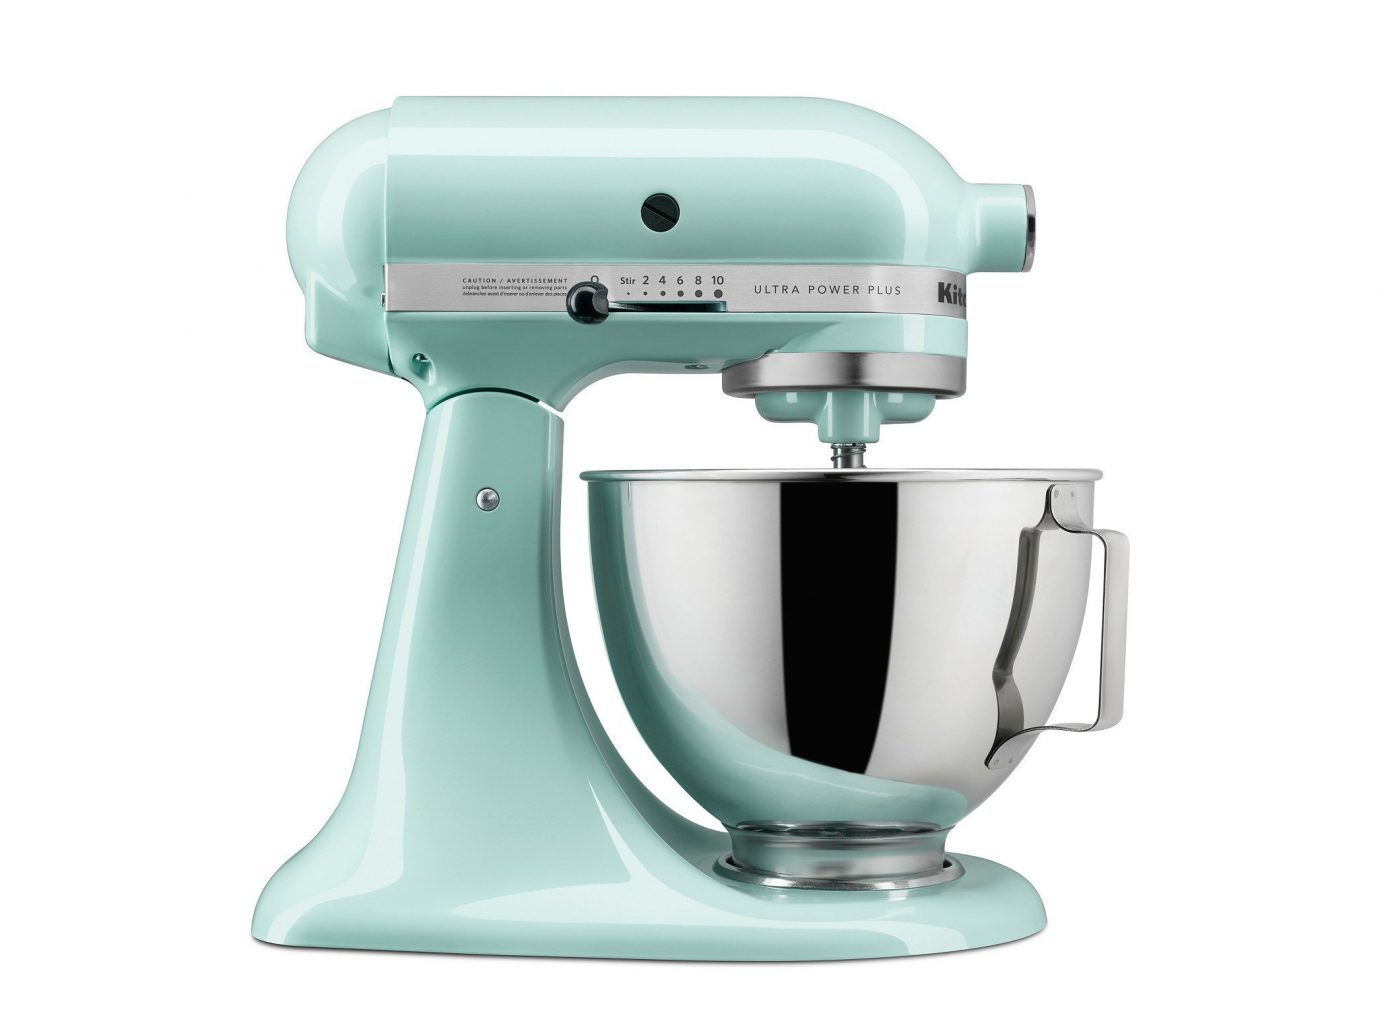 Gift Guides Travel Shop mixer indoor small appliance product kitchenware product design home appliance food processor kitchen appliance